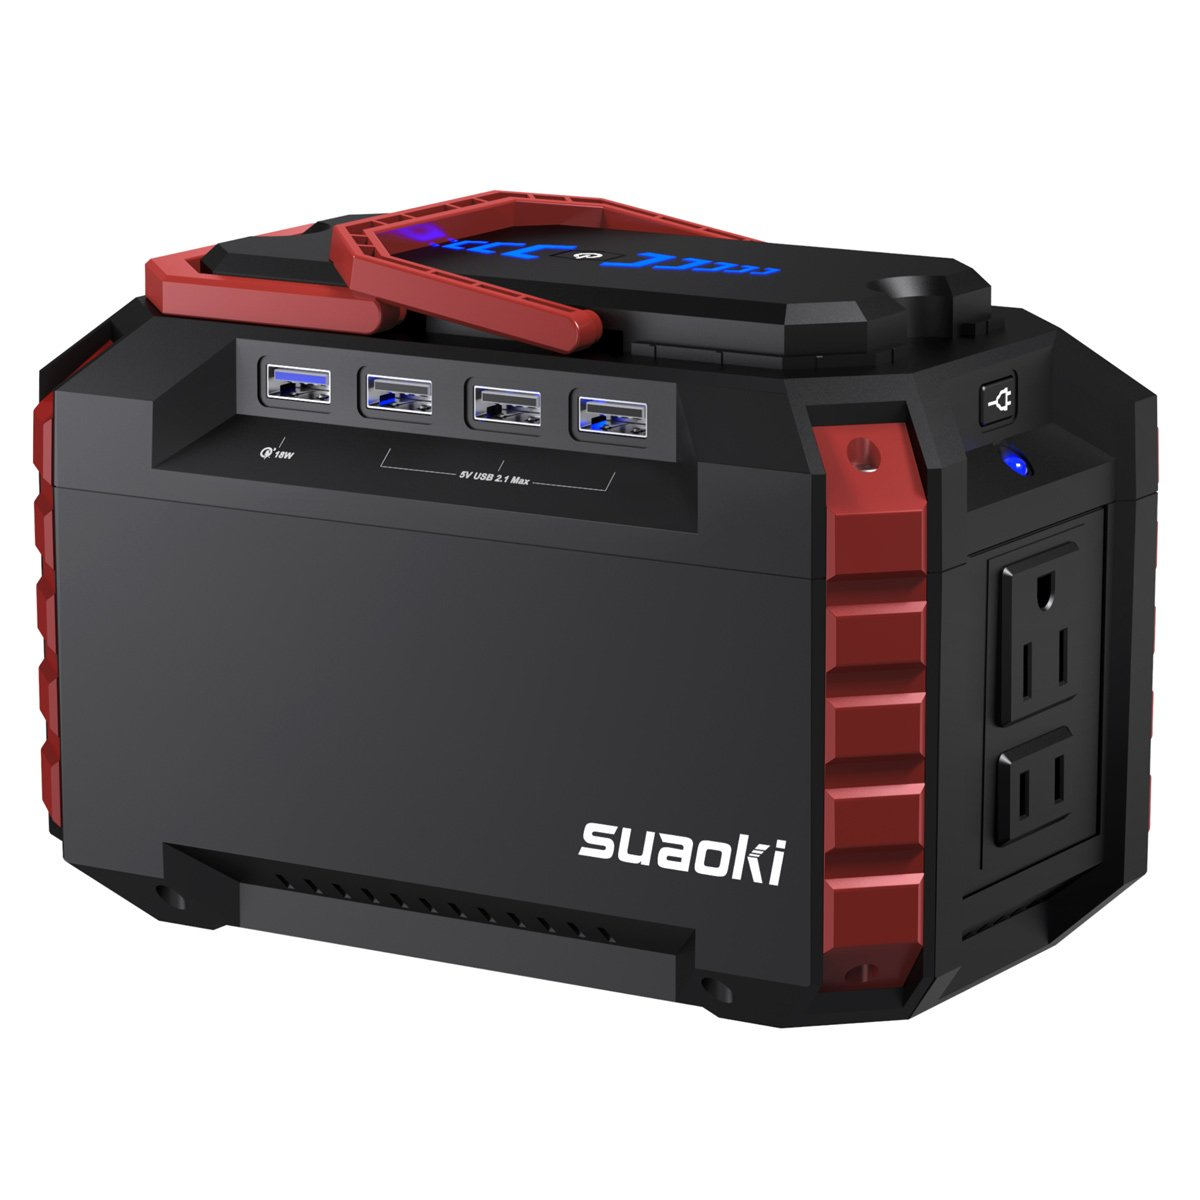 Generators Portable Power Patio Lawn Main Electrical Fuse Box Ebay Suaoki Station 150wh Quiet Gas Free Camping Generator Qc30 Ups Lithium